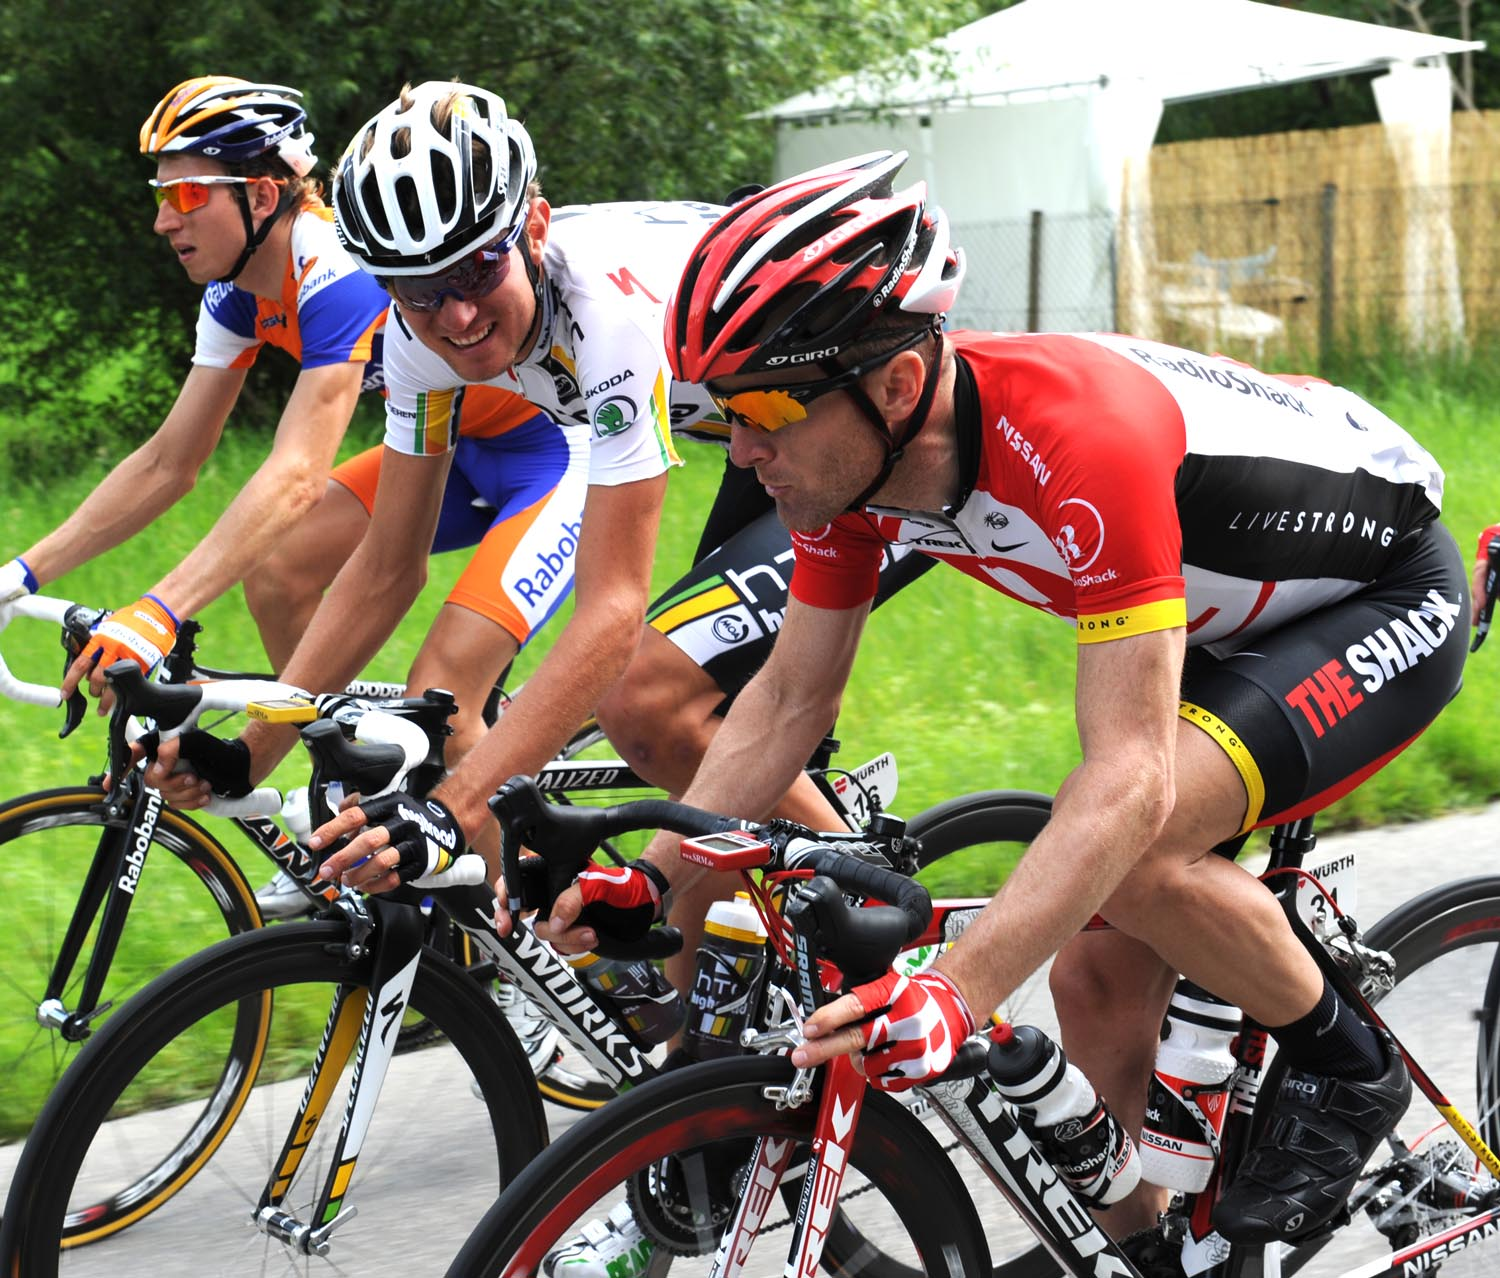 Levi Leipheimer and Tejay Van Garderen, Tour de Suisse 2011, stage four